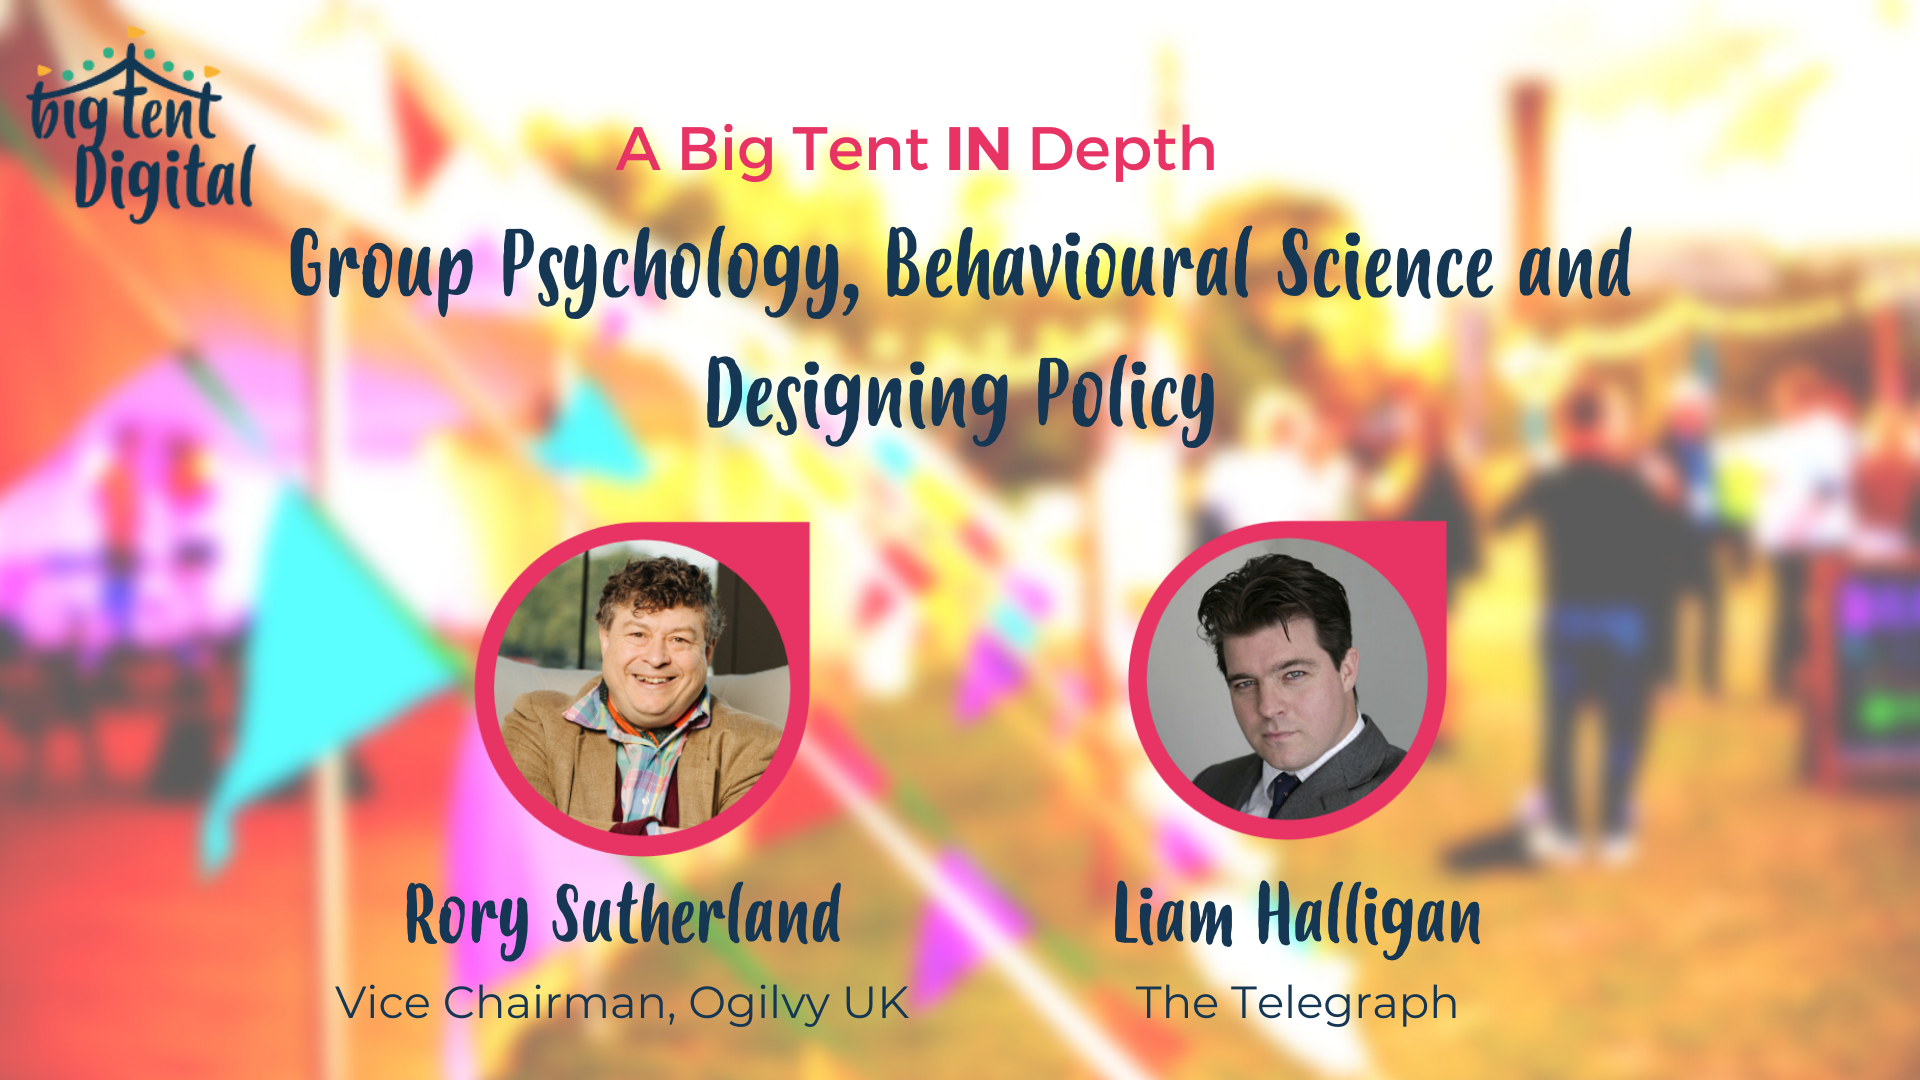 GROUP PSYCHOLOGY, BEHAVIOURAL SCIENCE AND DESIGNING POLICY